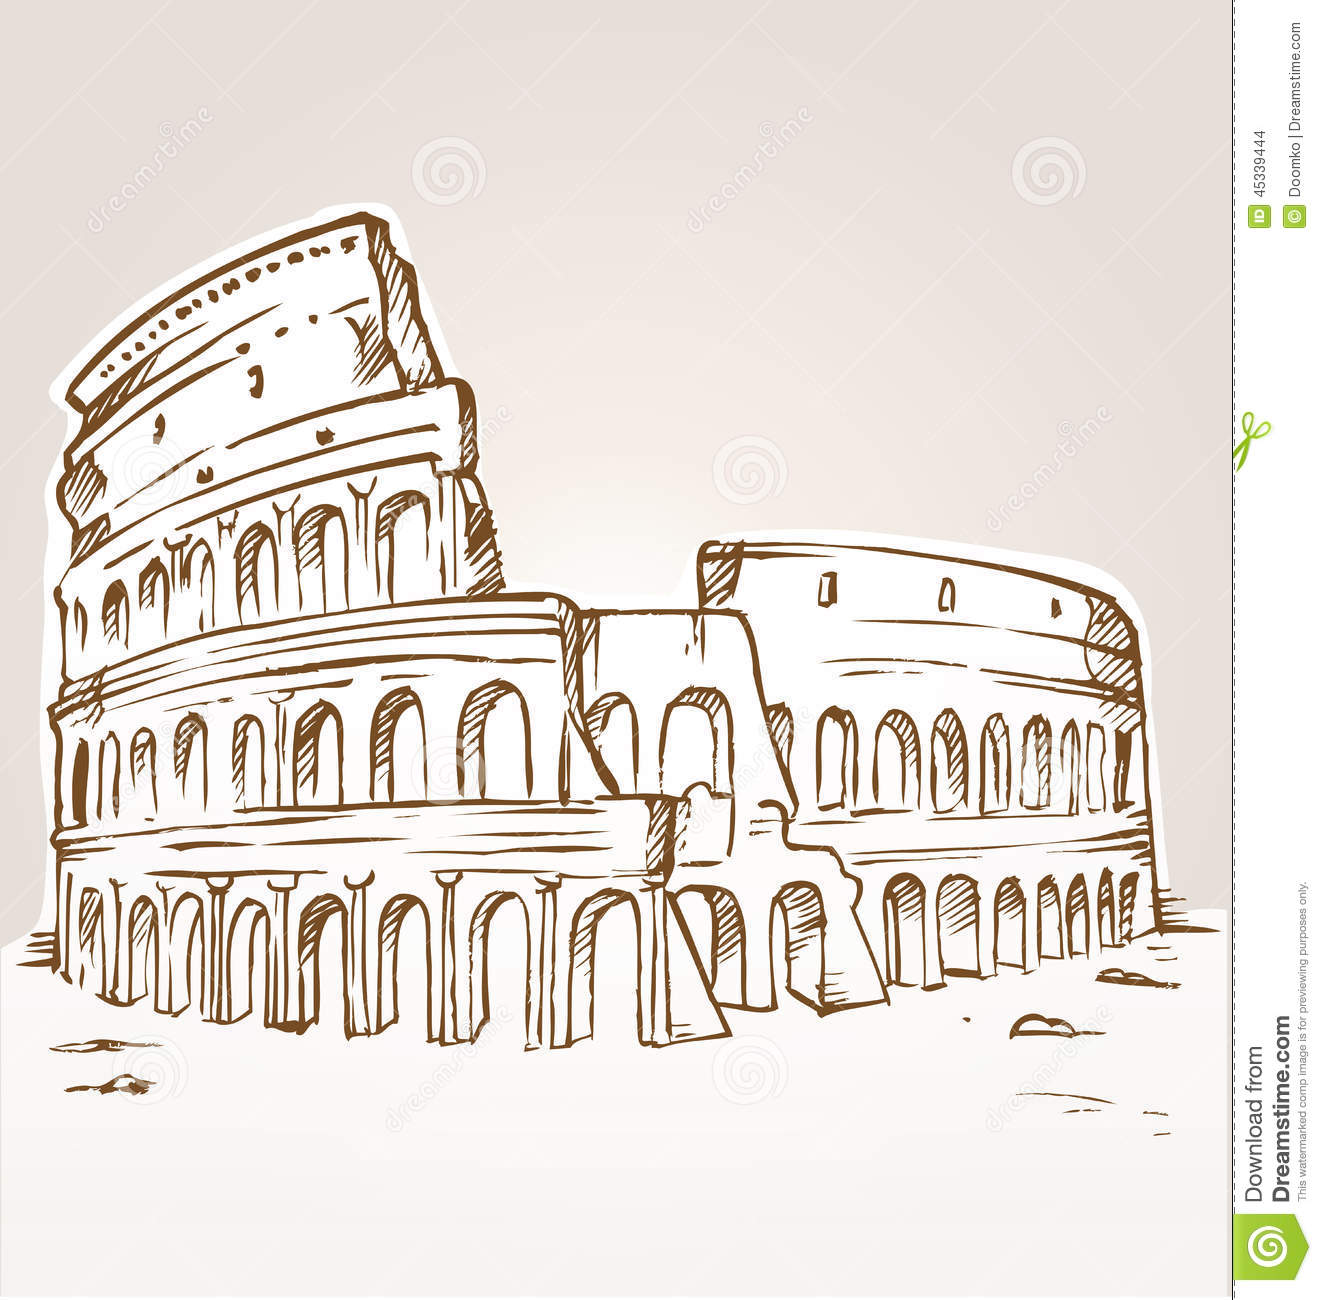 Colosseum Hand Draw Stock Vector. Illustration Of